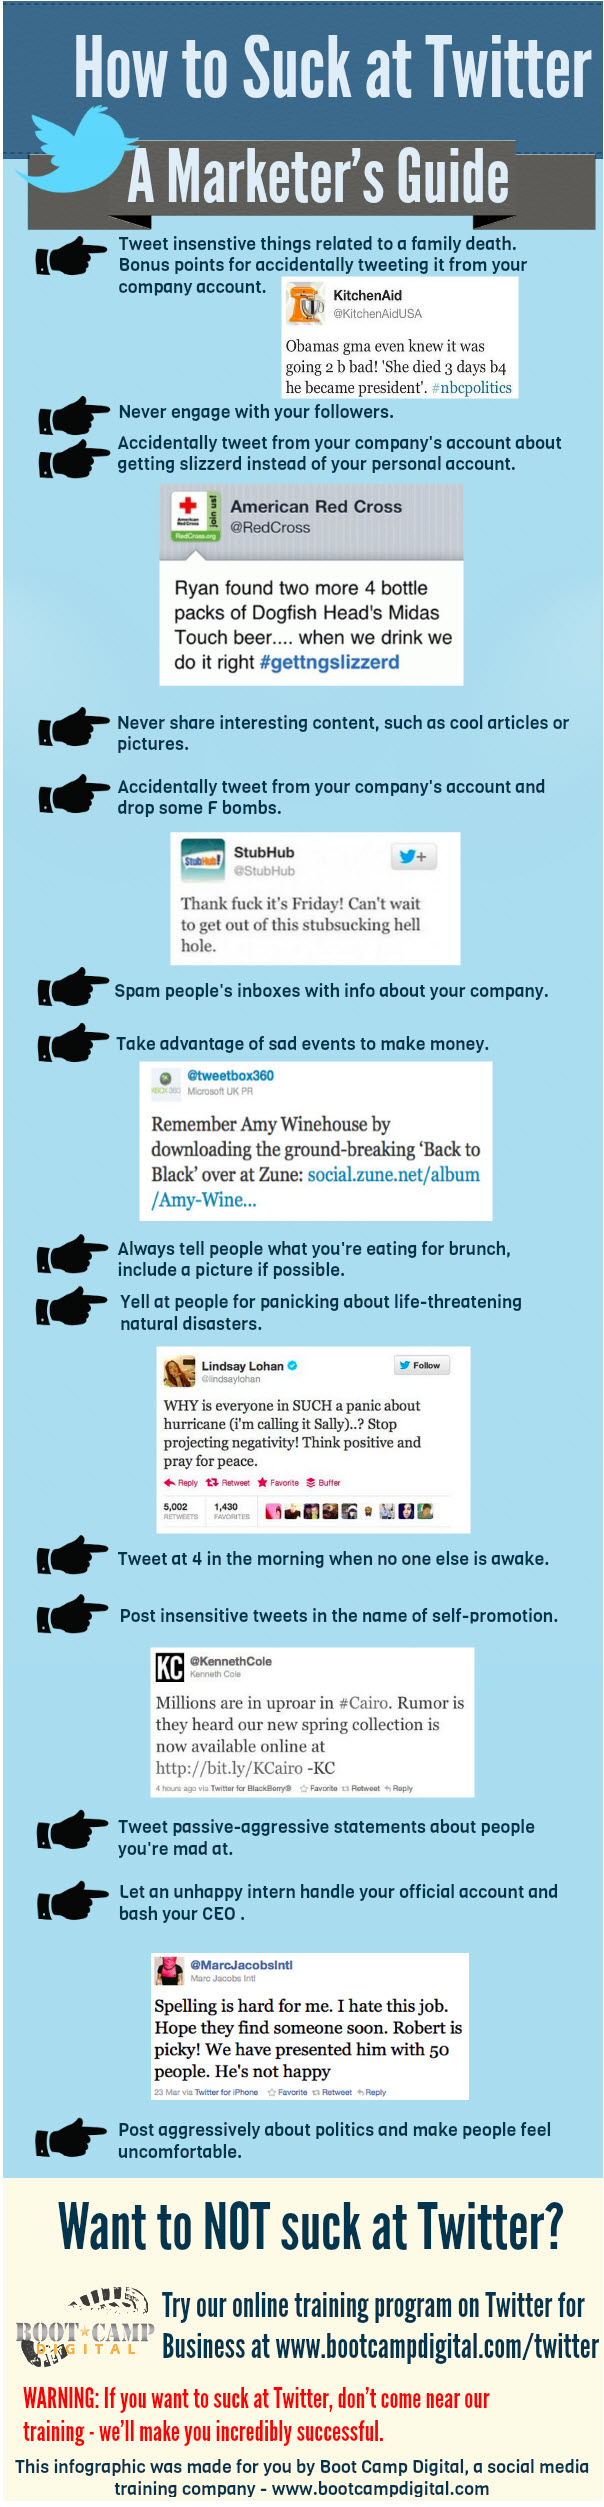 14 Twitter Mistakes to Avoid | Business 2 Community